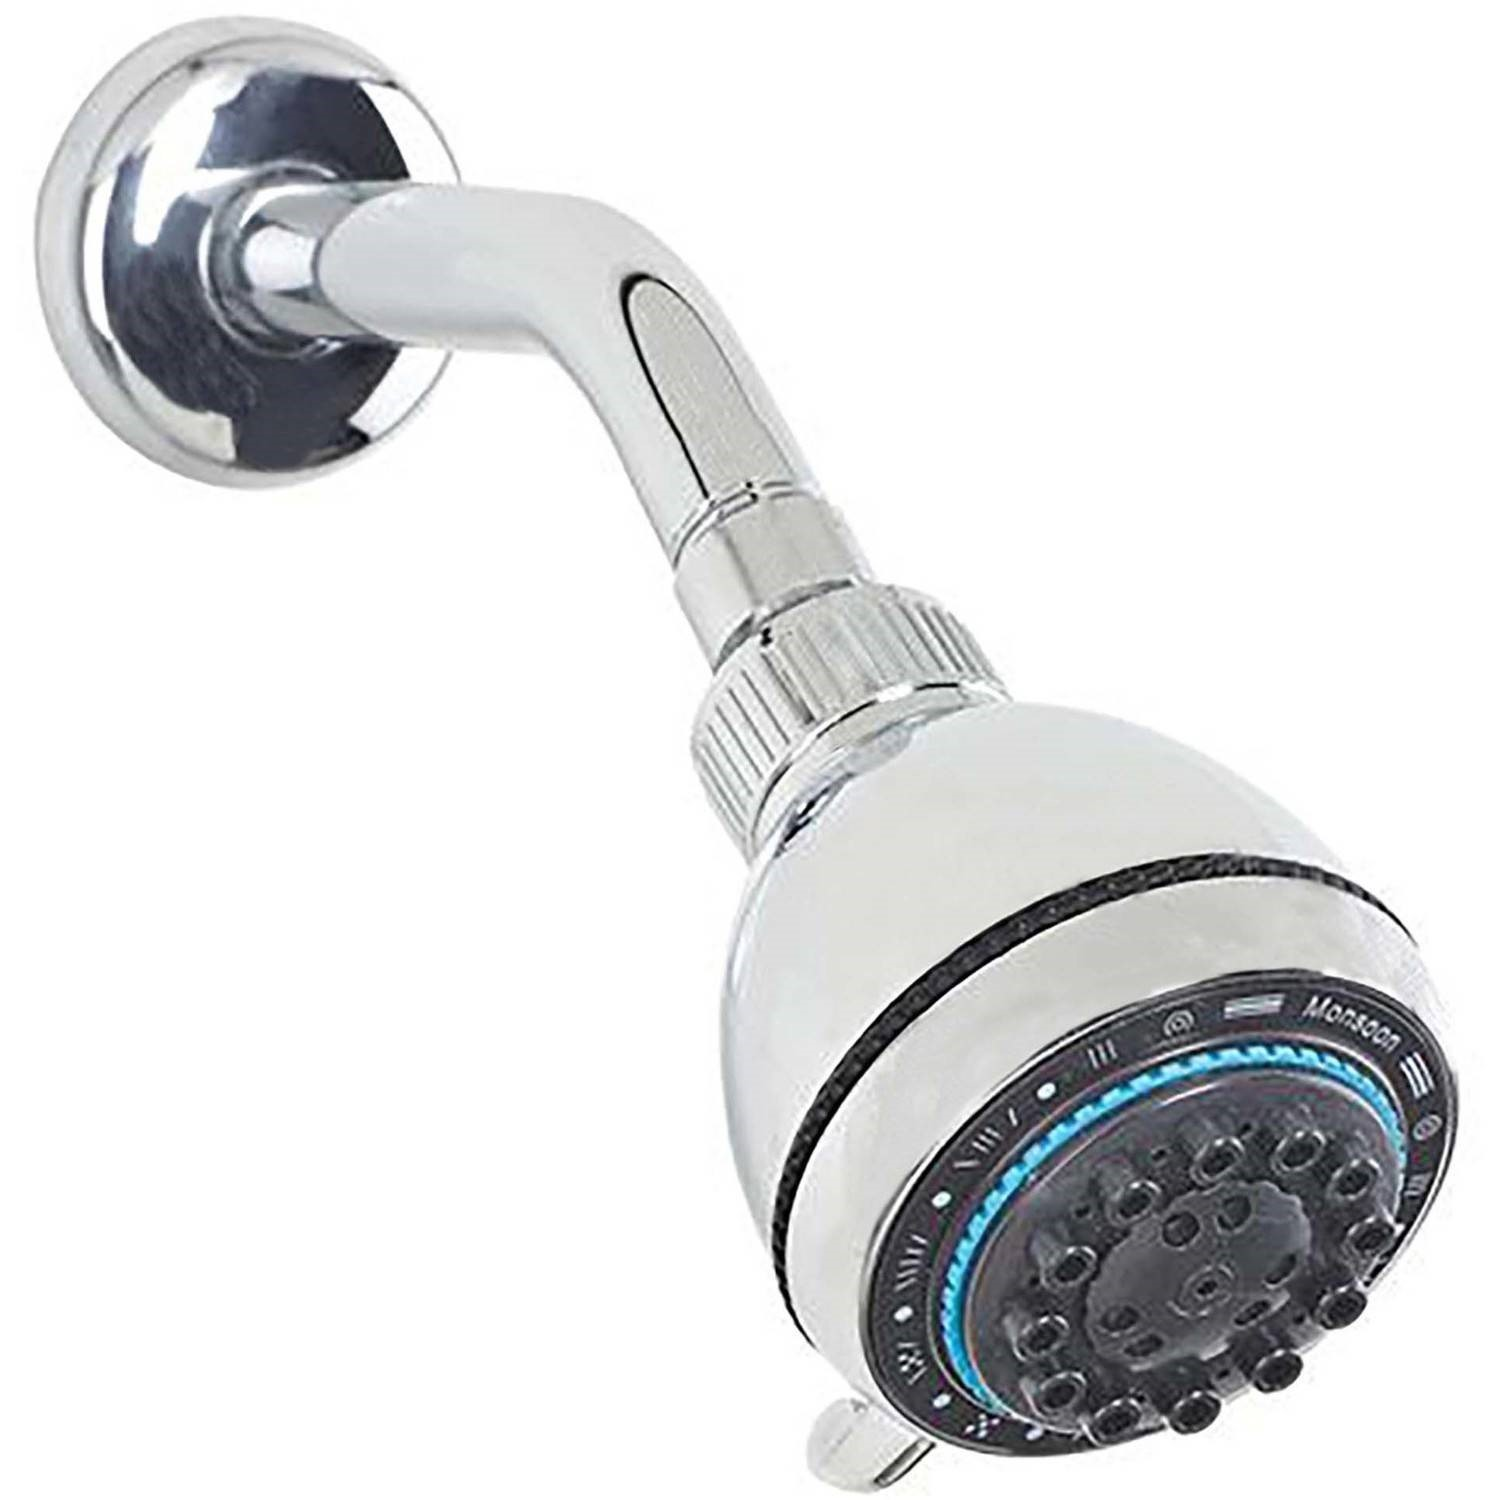 Bath Bliss 8-Function Deluxe Shower Head